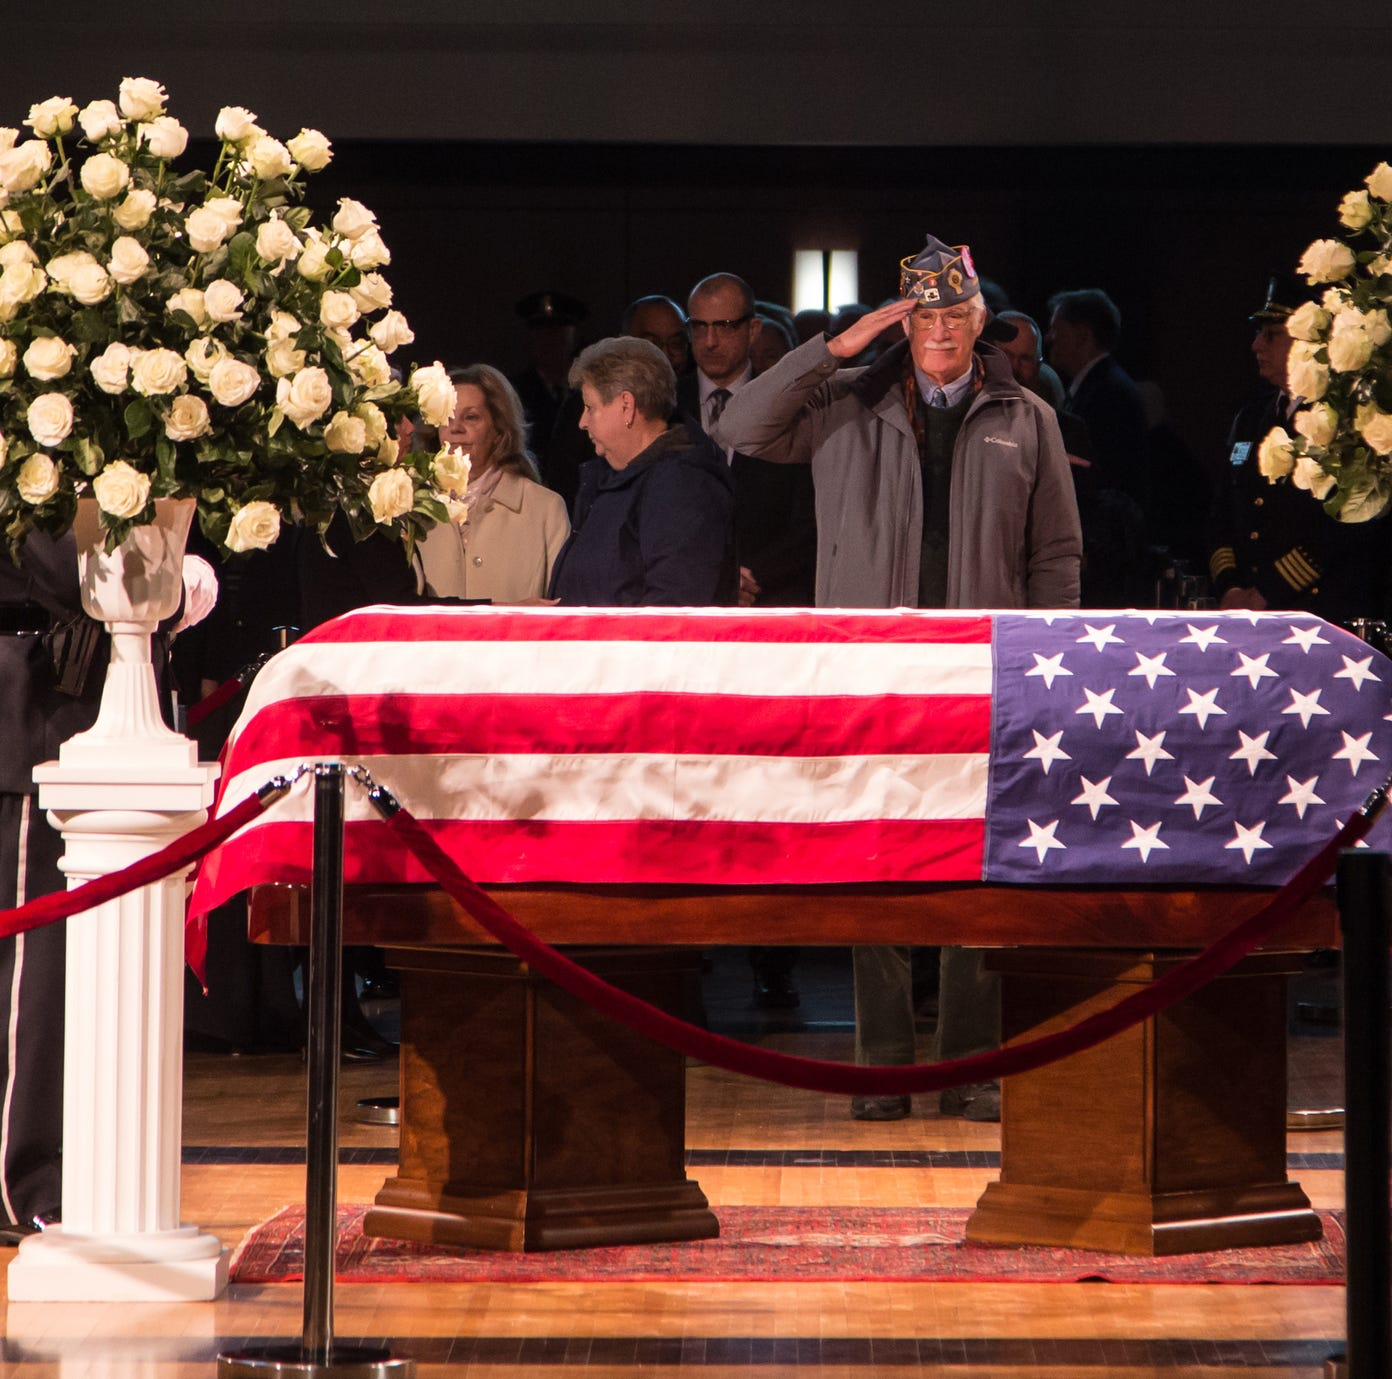 John Dingell funeral services: We say goodbye to the Dean today